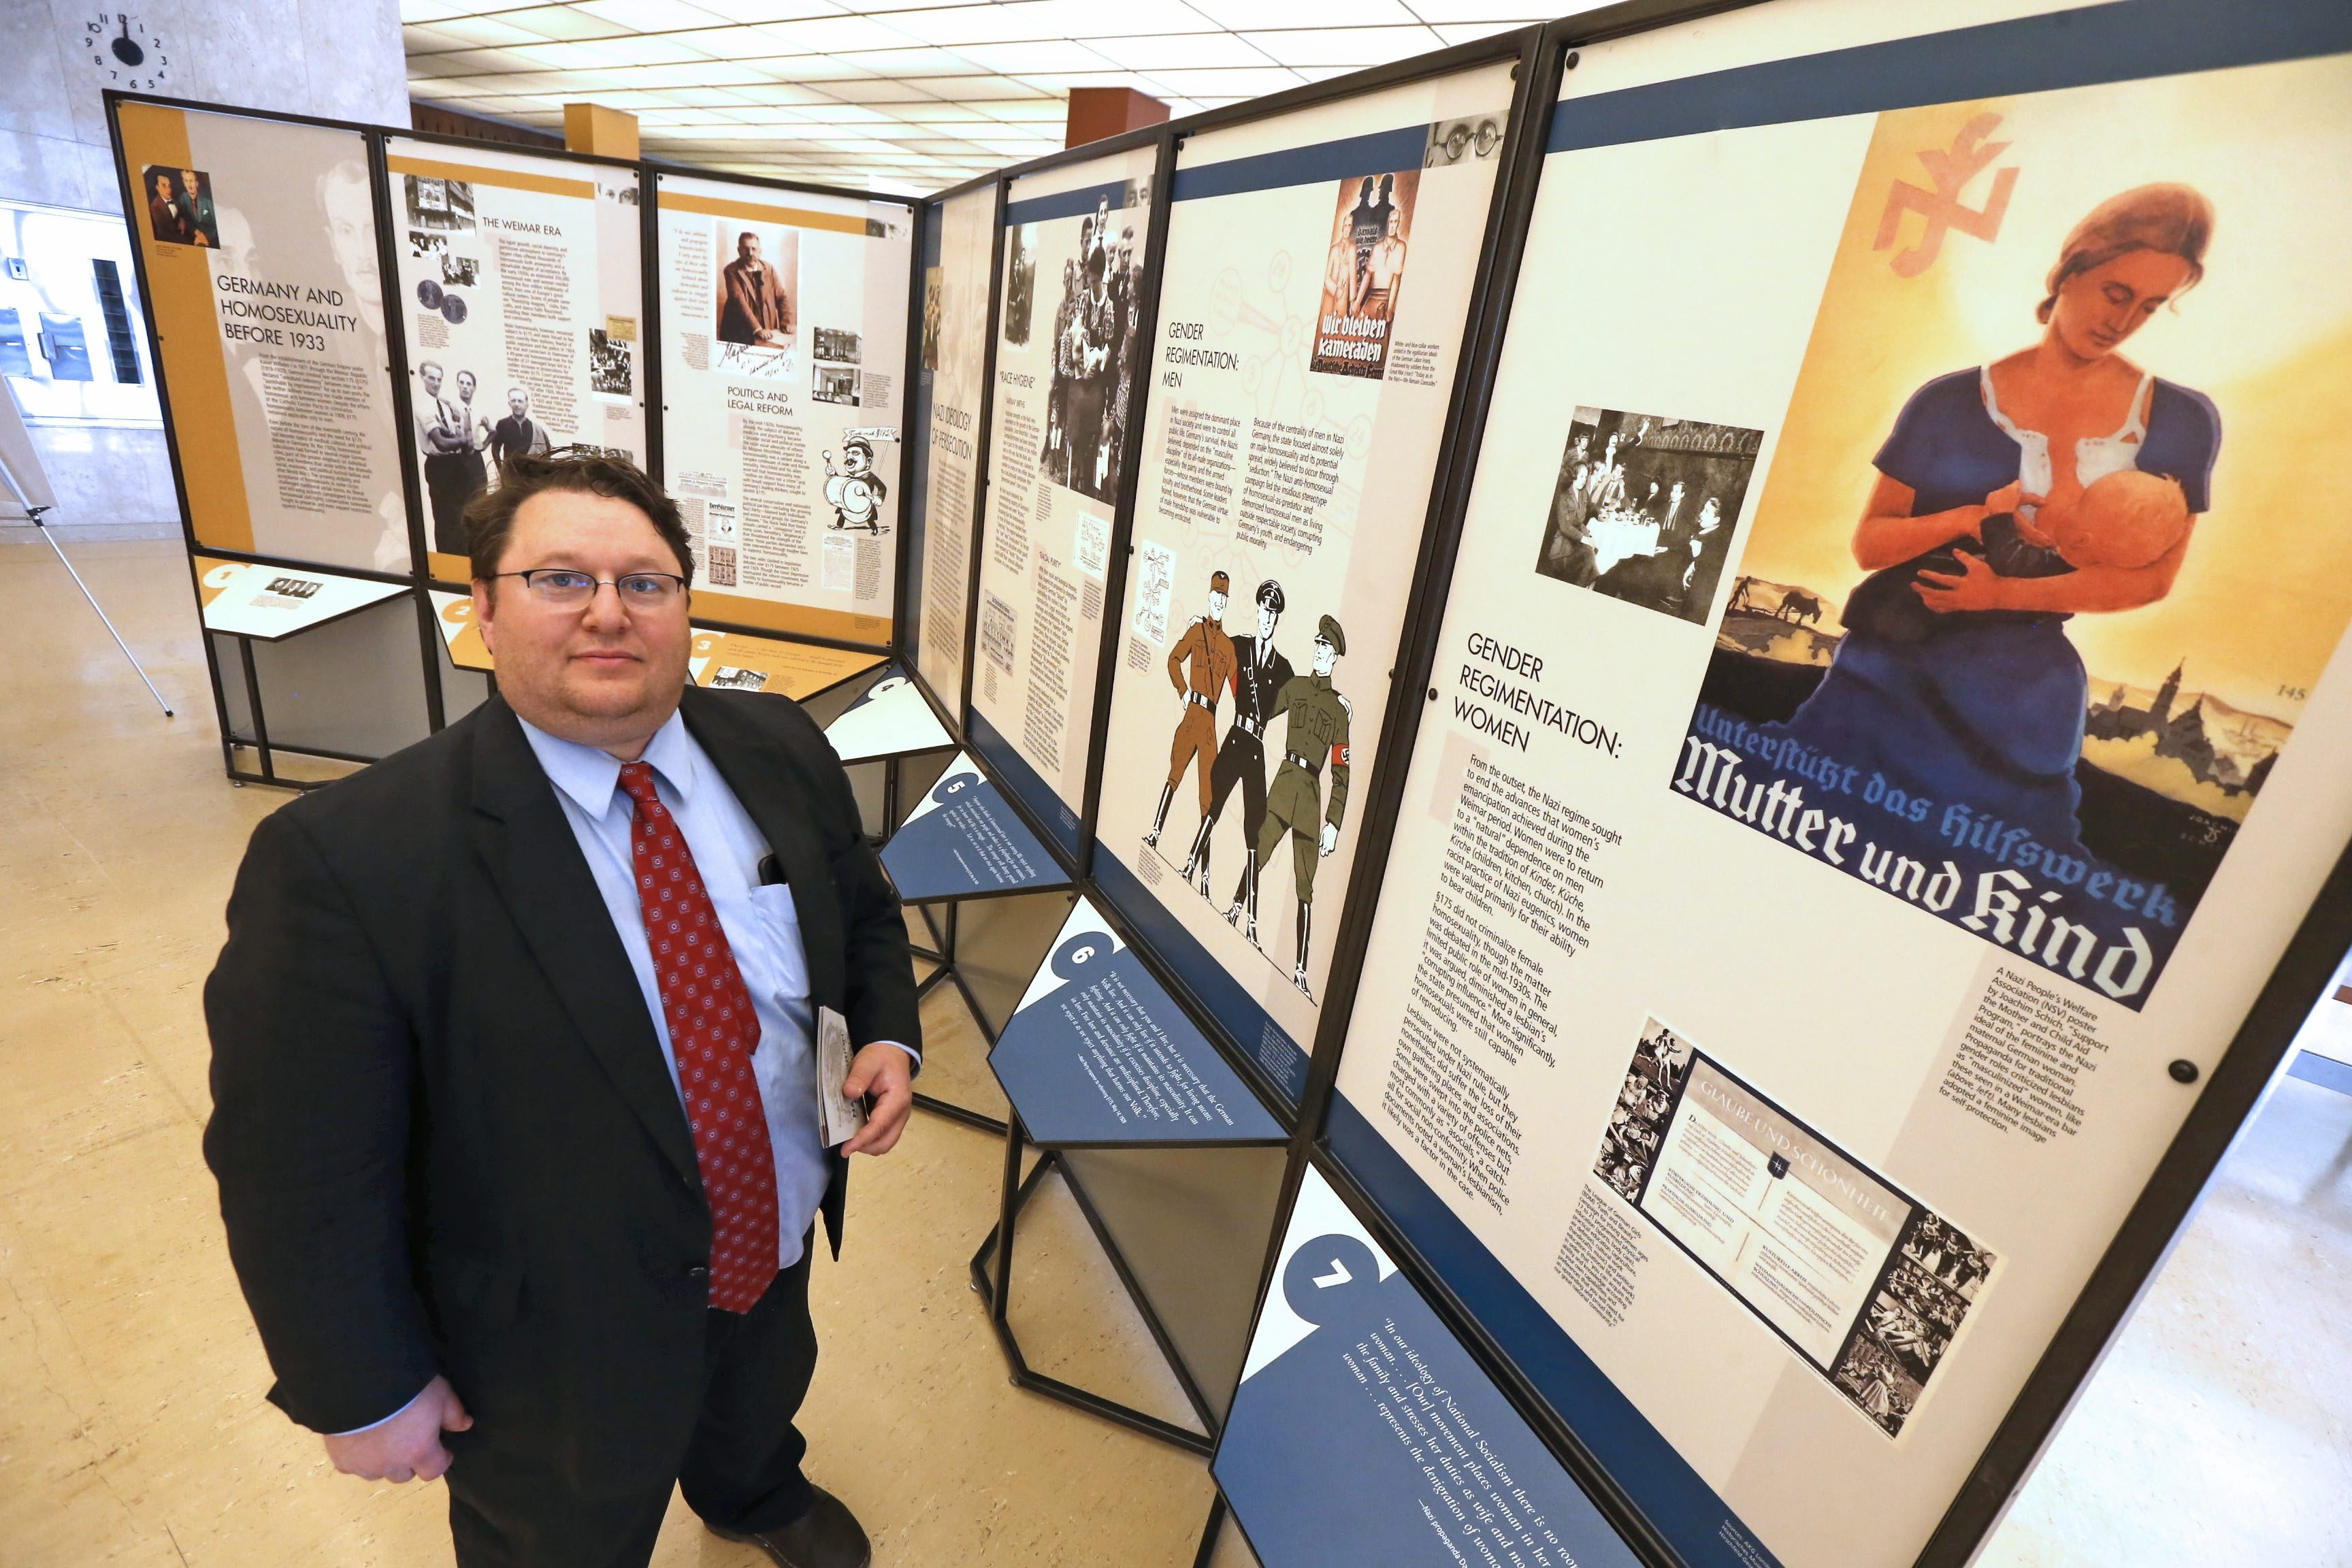 """Pieter(cq) Weinrieb, co-pres. of local Holocaust Resource Center, explores the new exhibit, """"Nazi Persecution of Homosexuals 1933-1945,"""" which opened last Sunday and is on-loan from the Holocaust Museum in the """"Whisper Space"""" section of the main central public library in downtown Buffalo on Wednesday, May 25, 2016.  ()"""